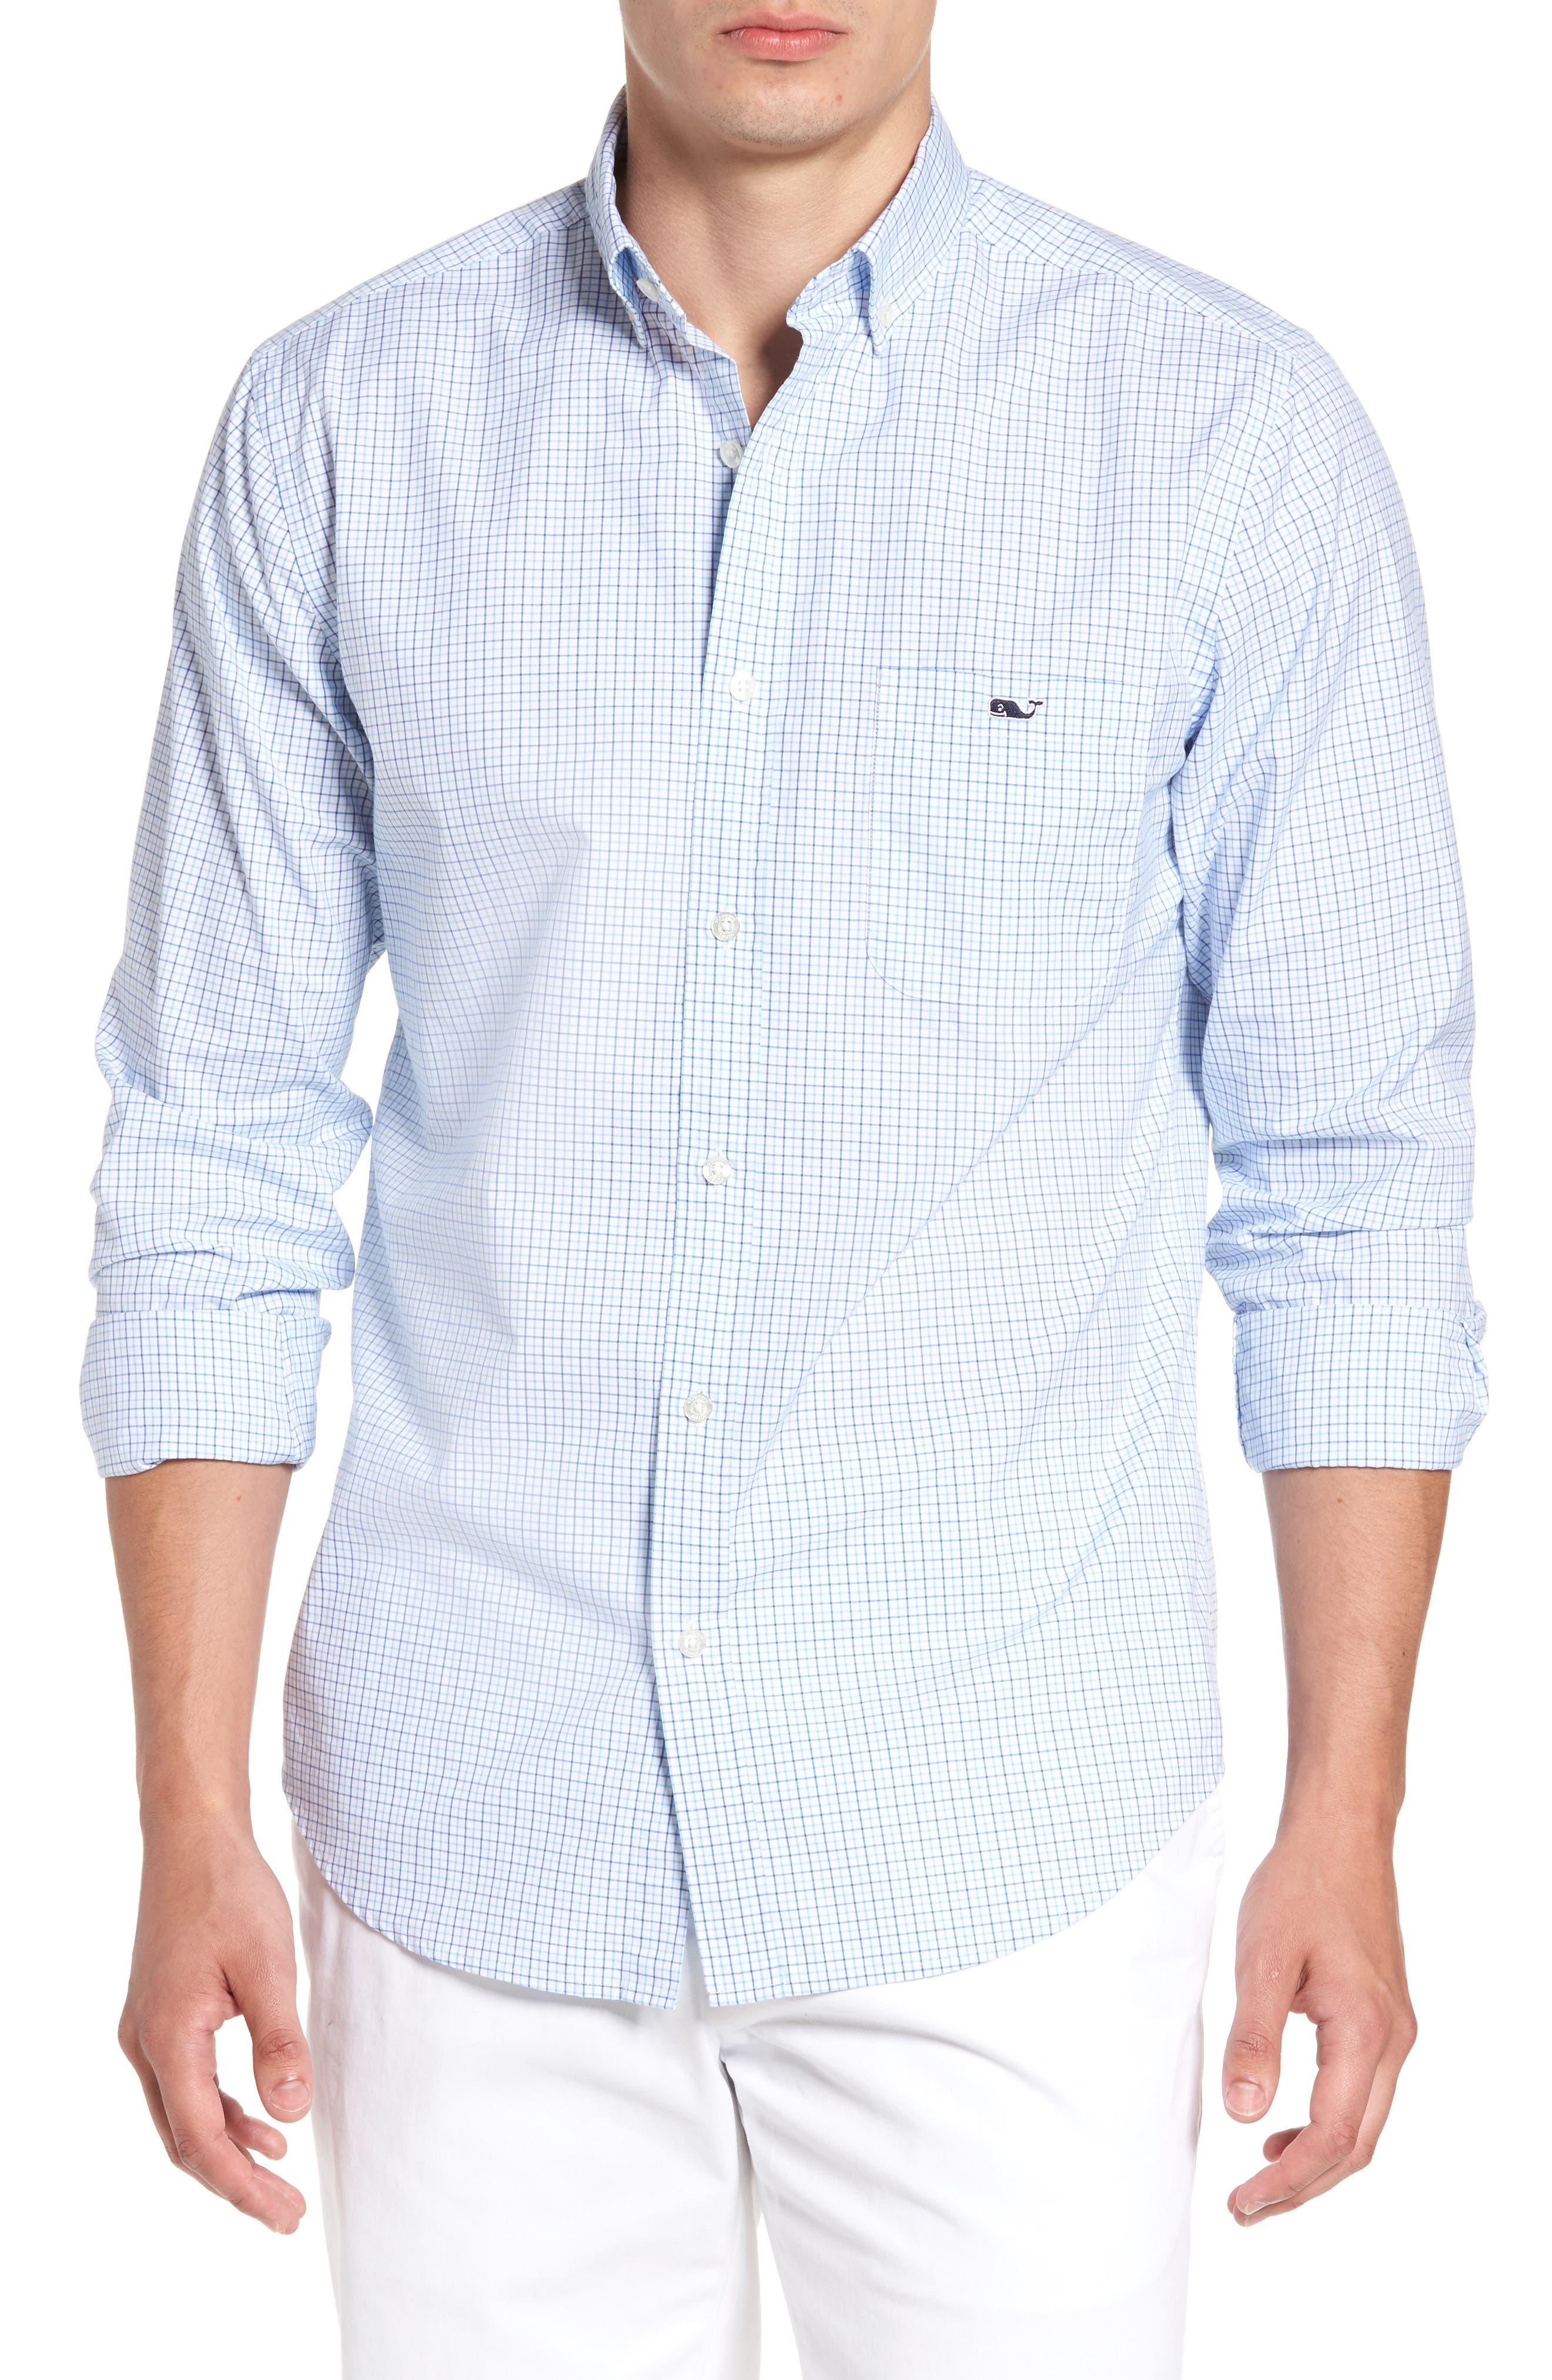 Alternate Image 1 Selected - vineyard vines Twin Pond Classic Fit Tattersall Check Sport Shirt